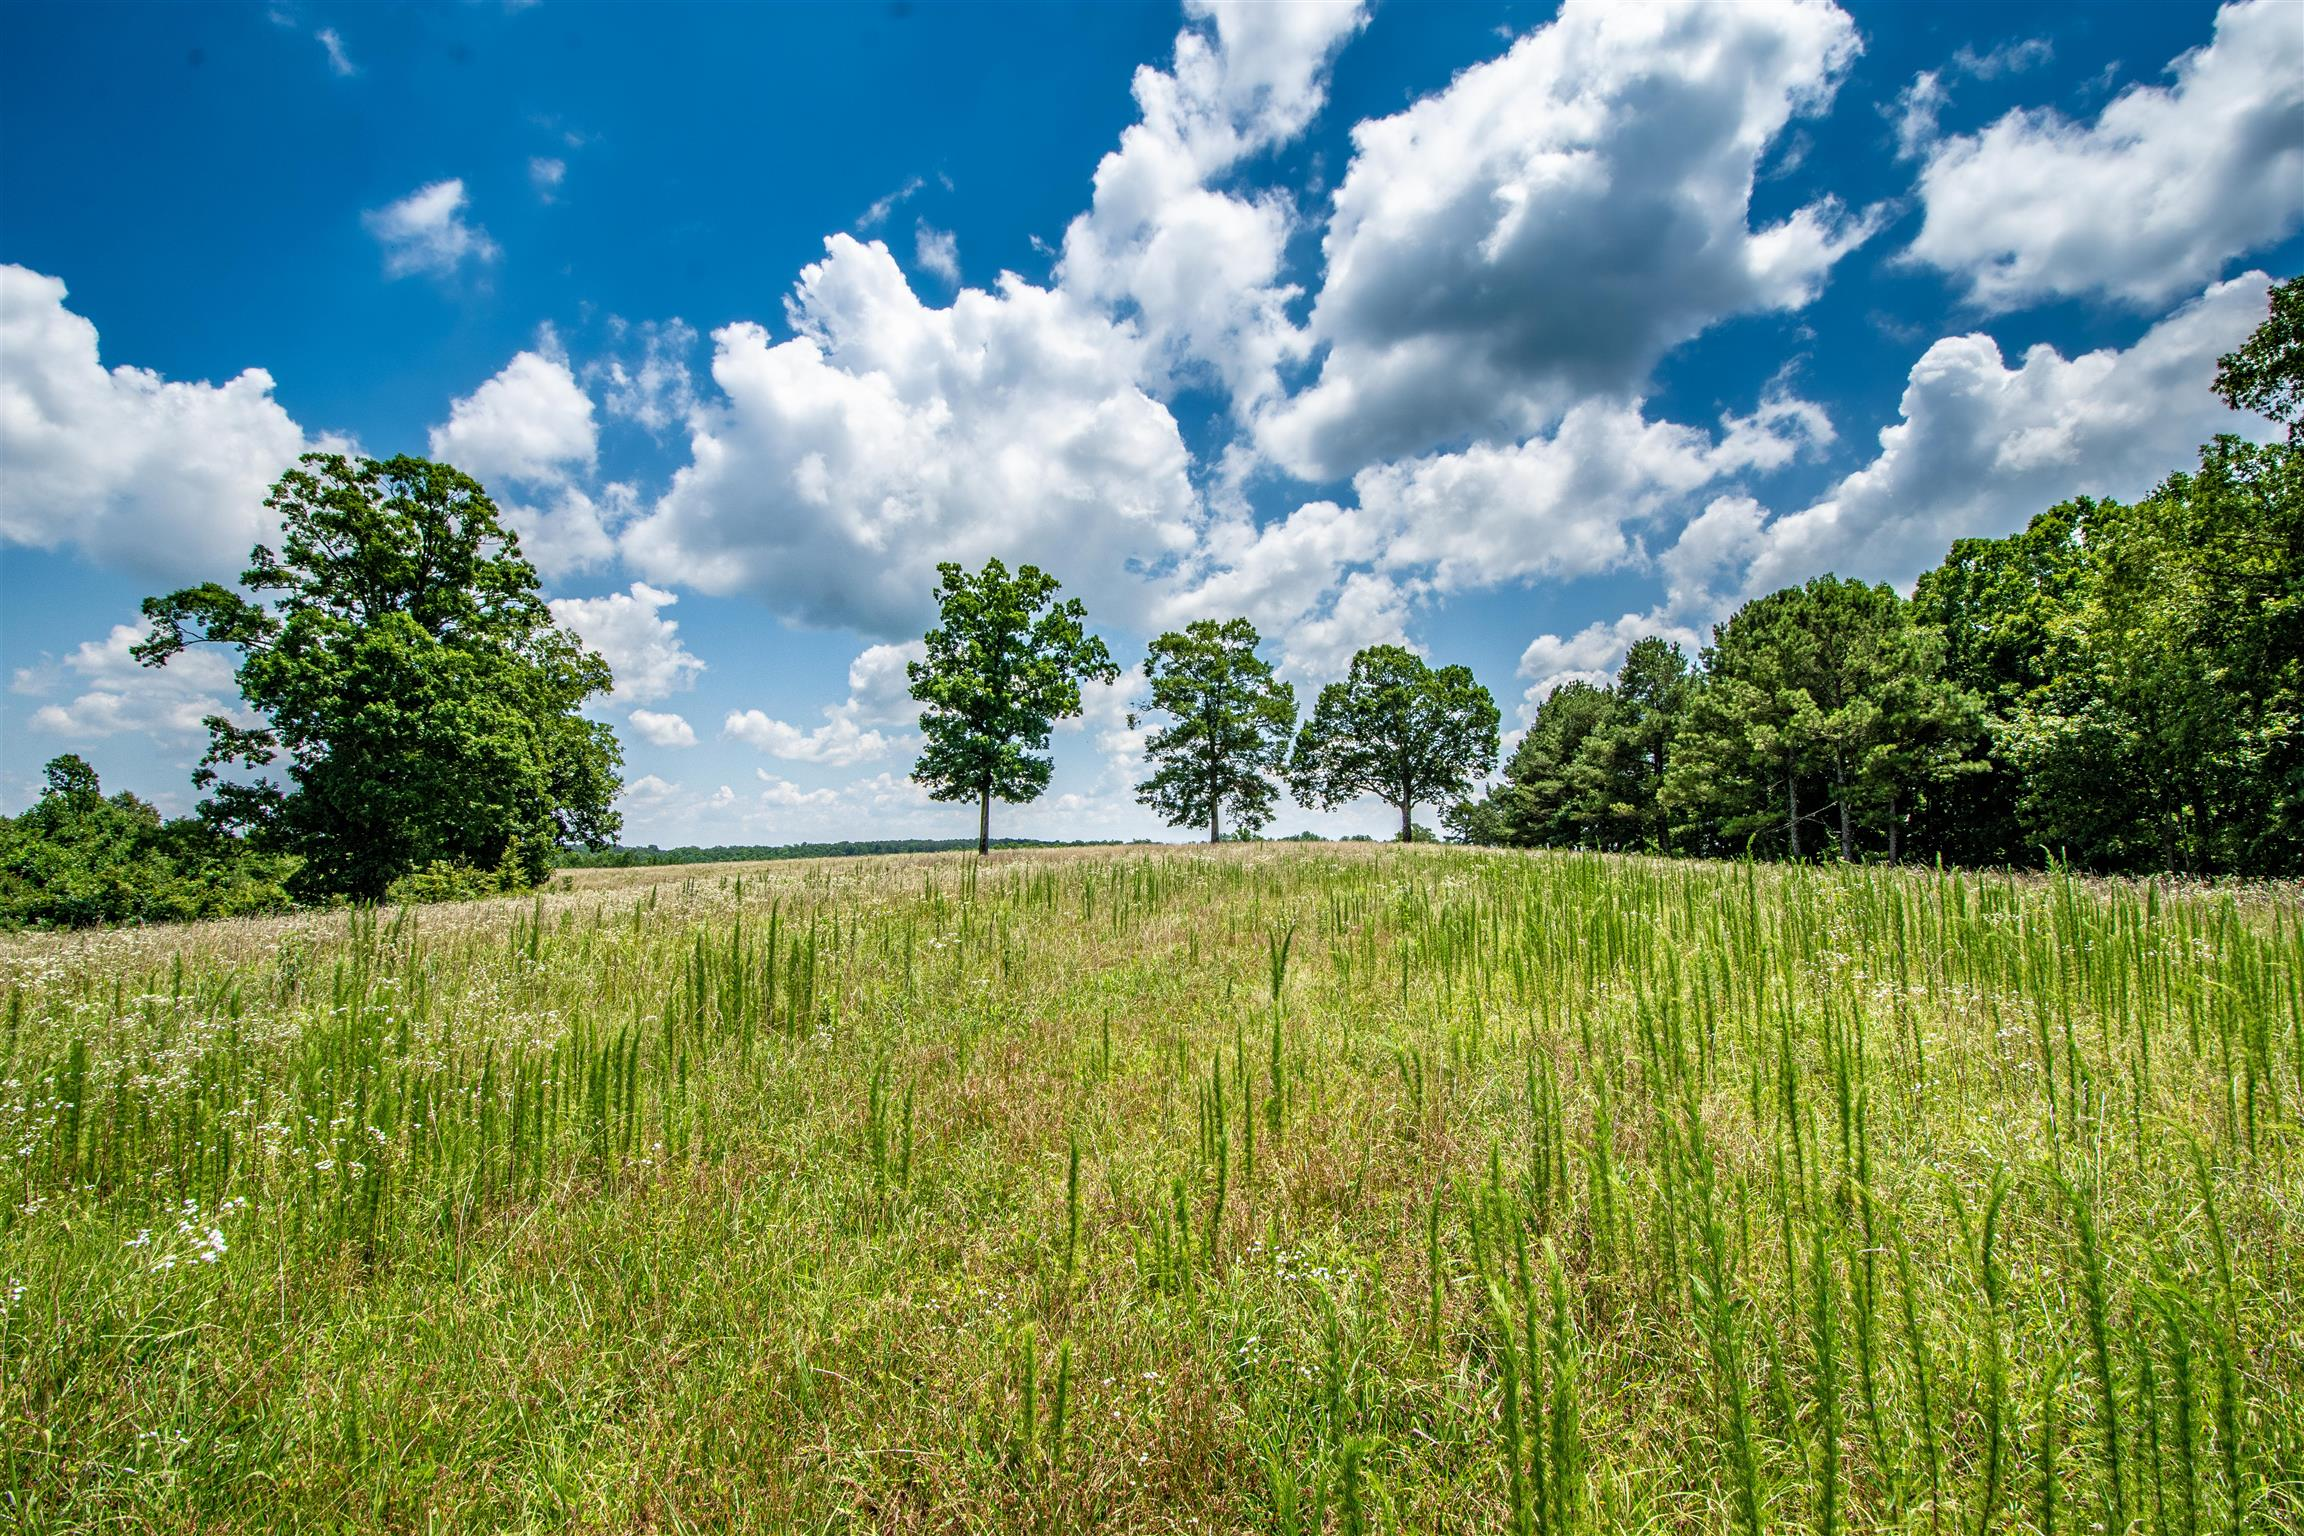 202 Weakley Loop Rd, Ethridge, TN 38456 - Ethridge, TN real estate listing